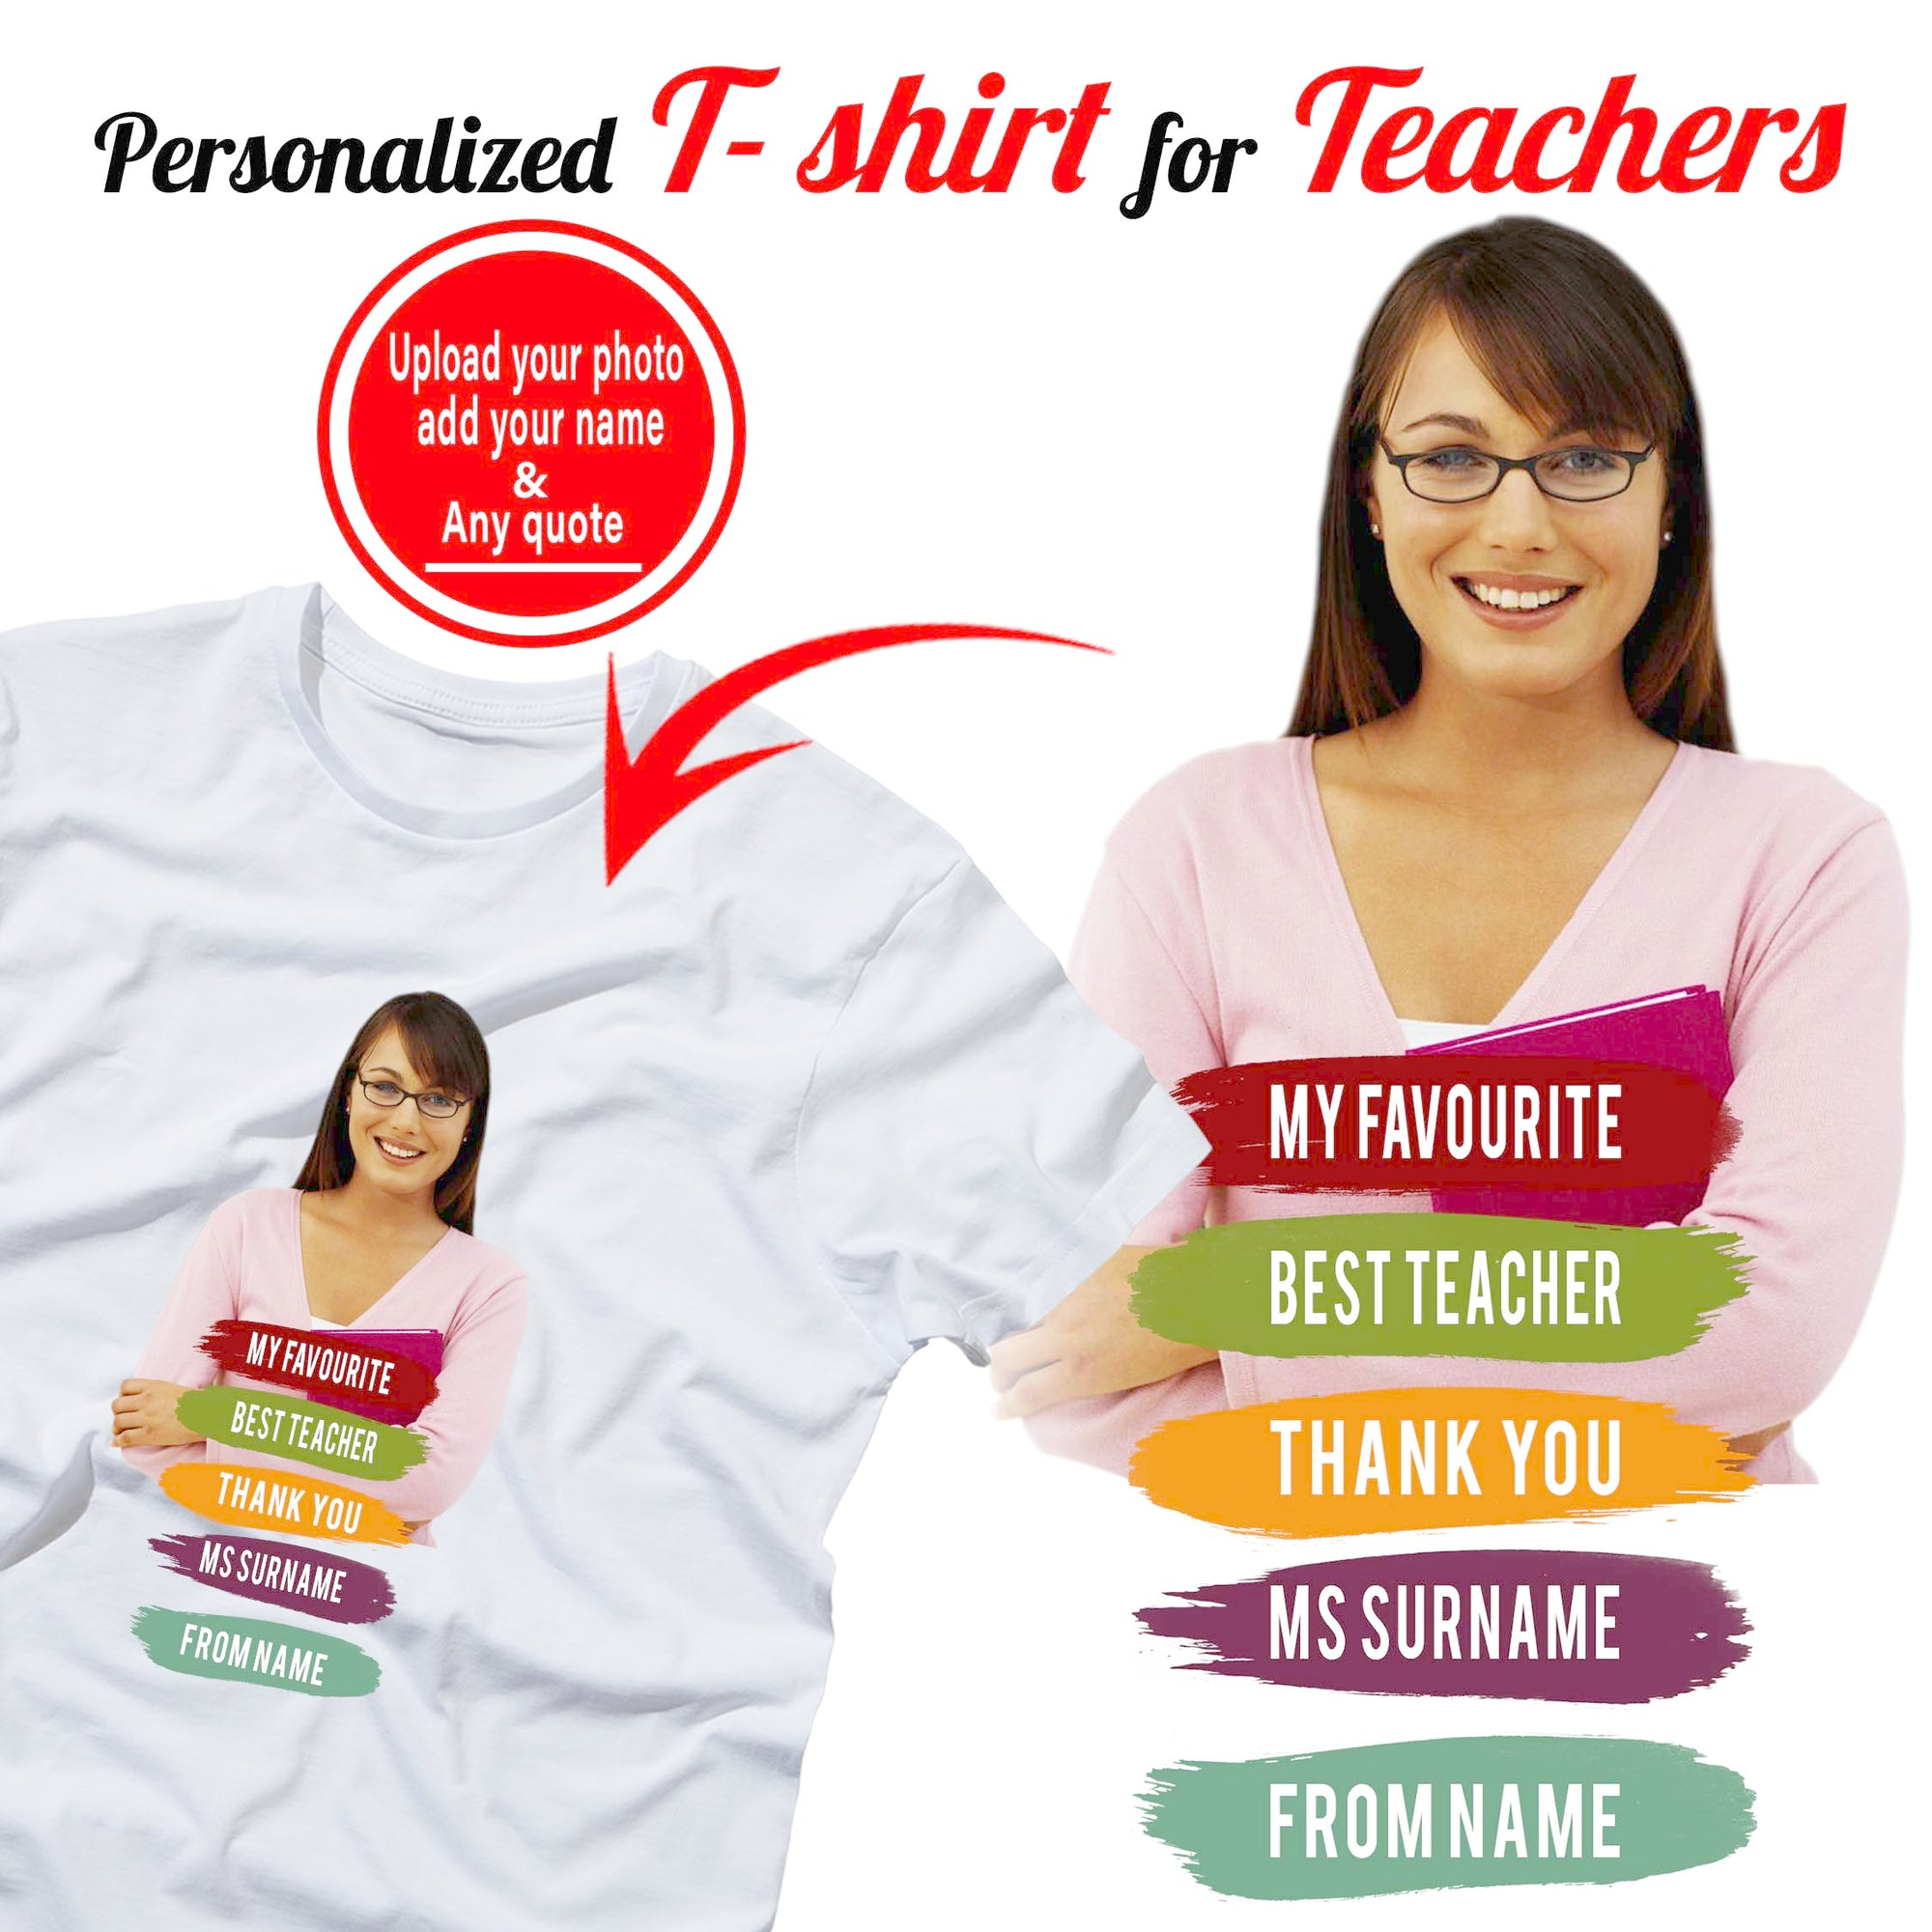 PERSONALIZED T- SHIRT - upload your photo & add any text 2